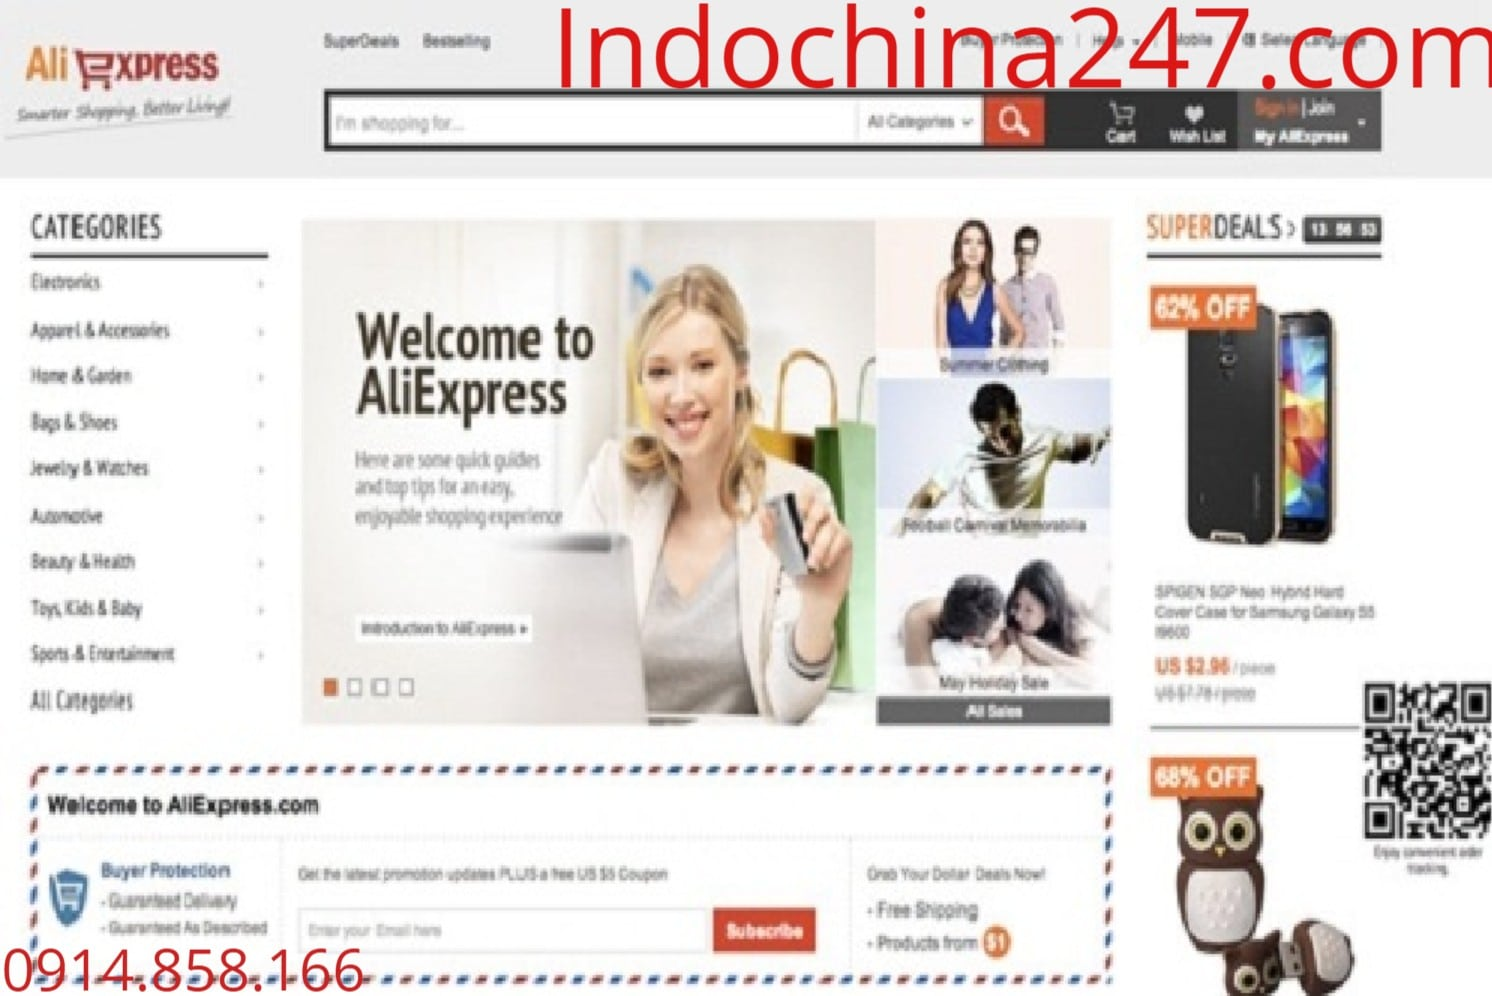 Indochina247.com/Tel: 0914.858.166